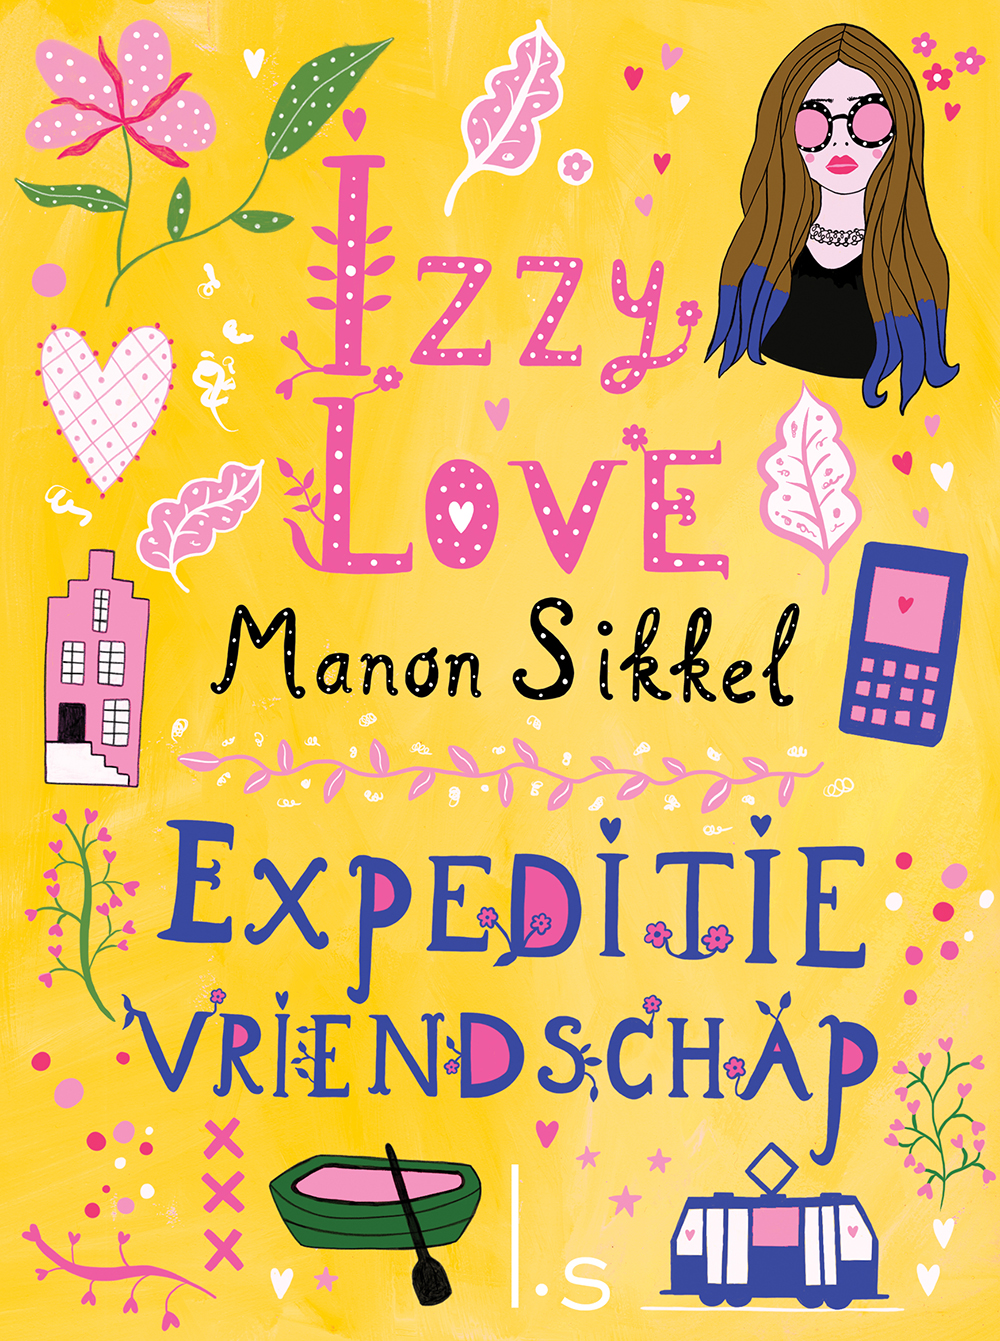 Izzy Love, design and illustration by Marenthe.jpg